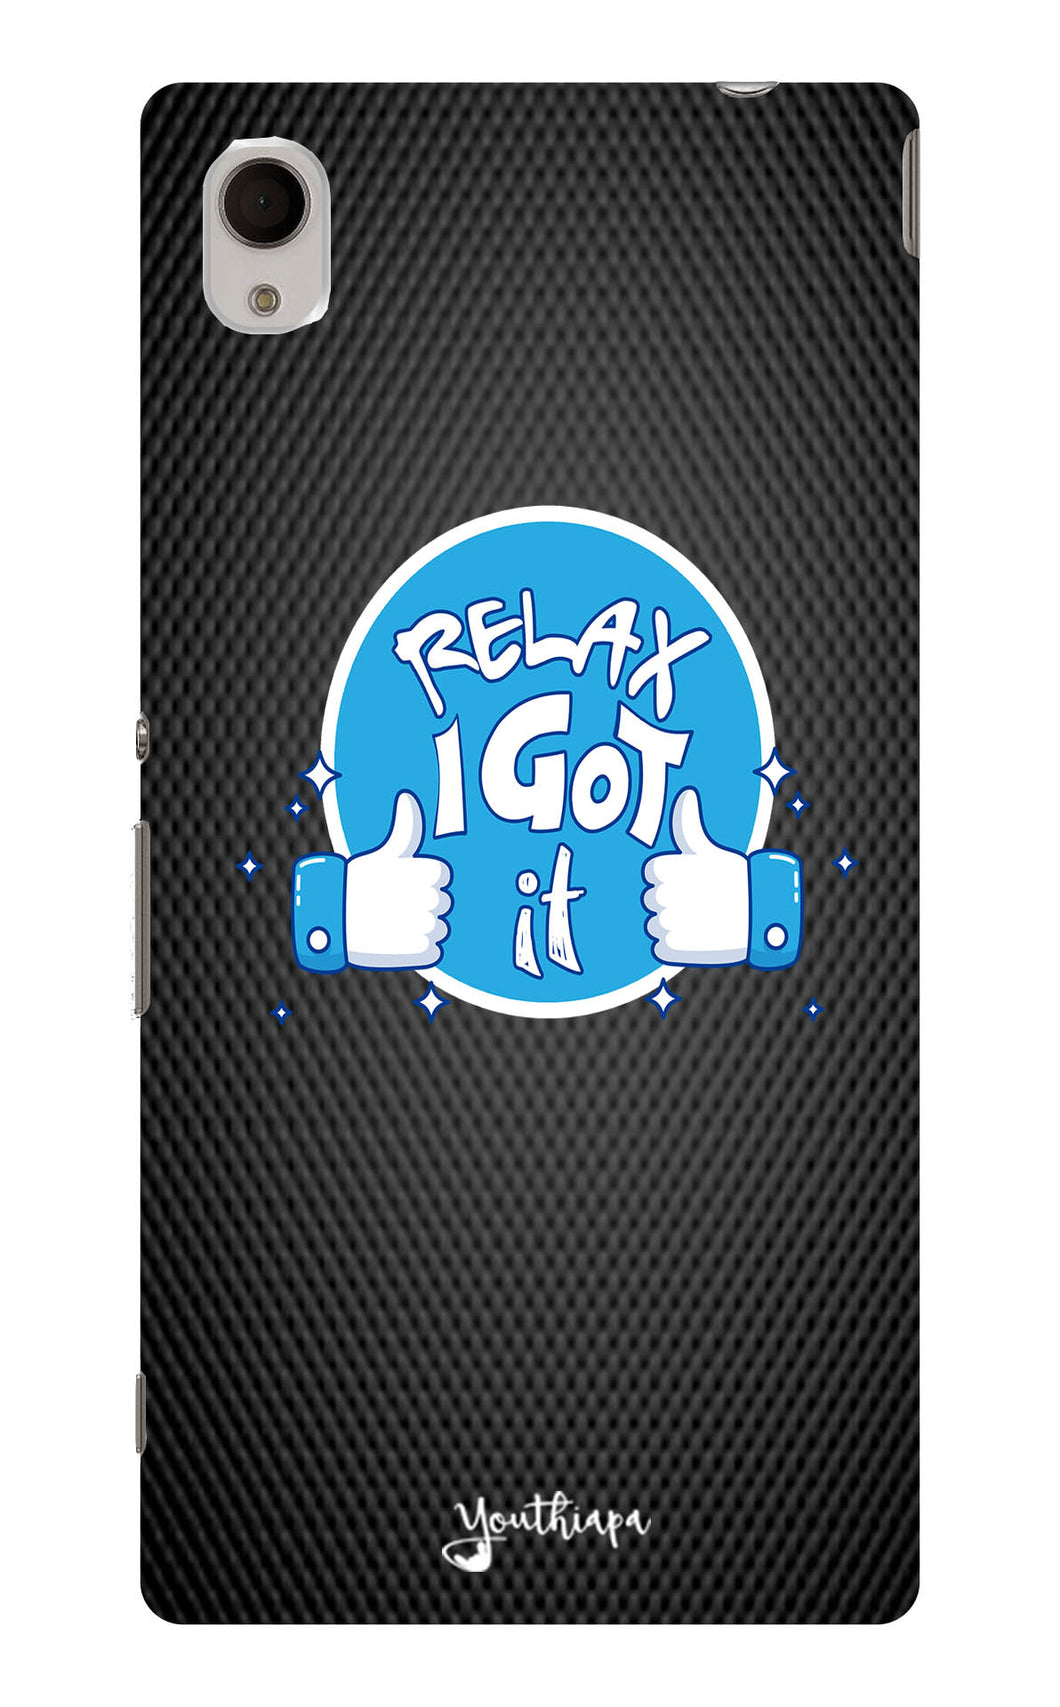 Relax Edition for Sony Xperia M4 Aqua